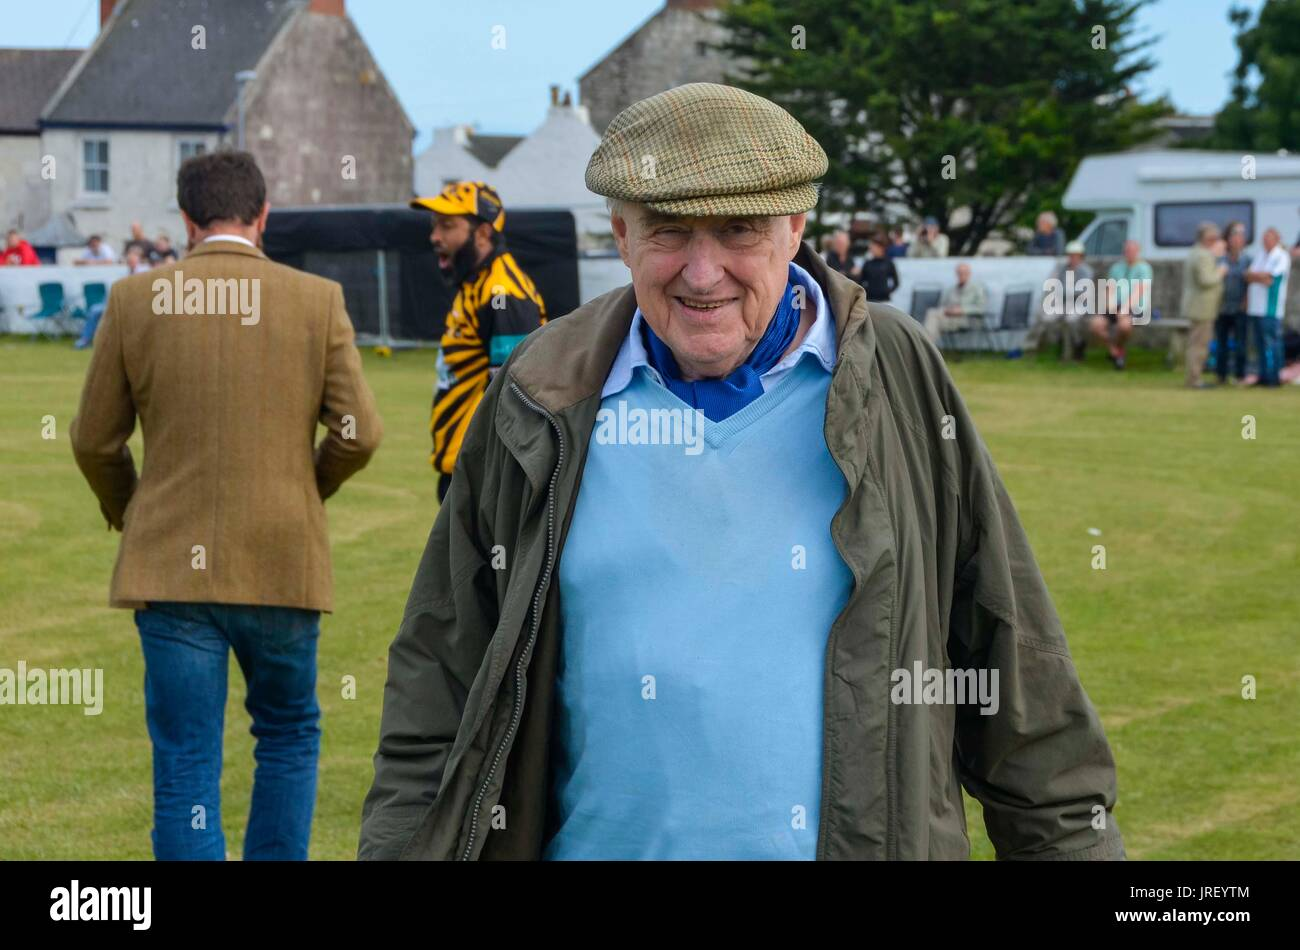 Easton, Portland, Dorset, UK.  4th August 2017.  Legendary cricket commentator Henry Blofeld during the Portland Stock Photo